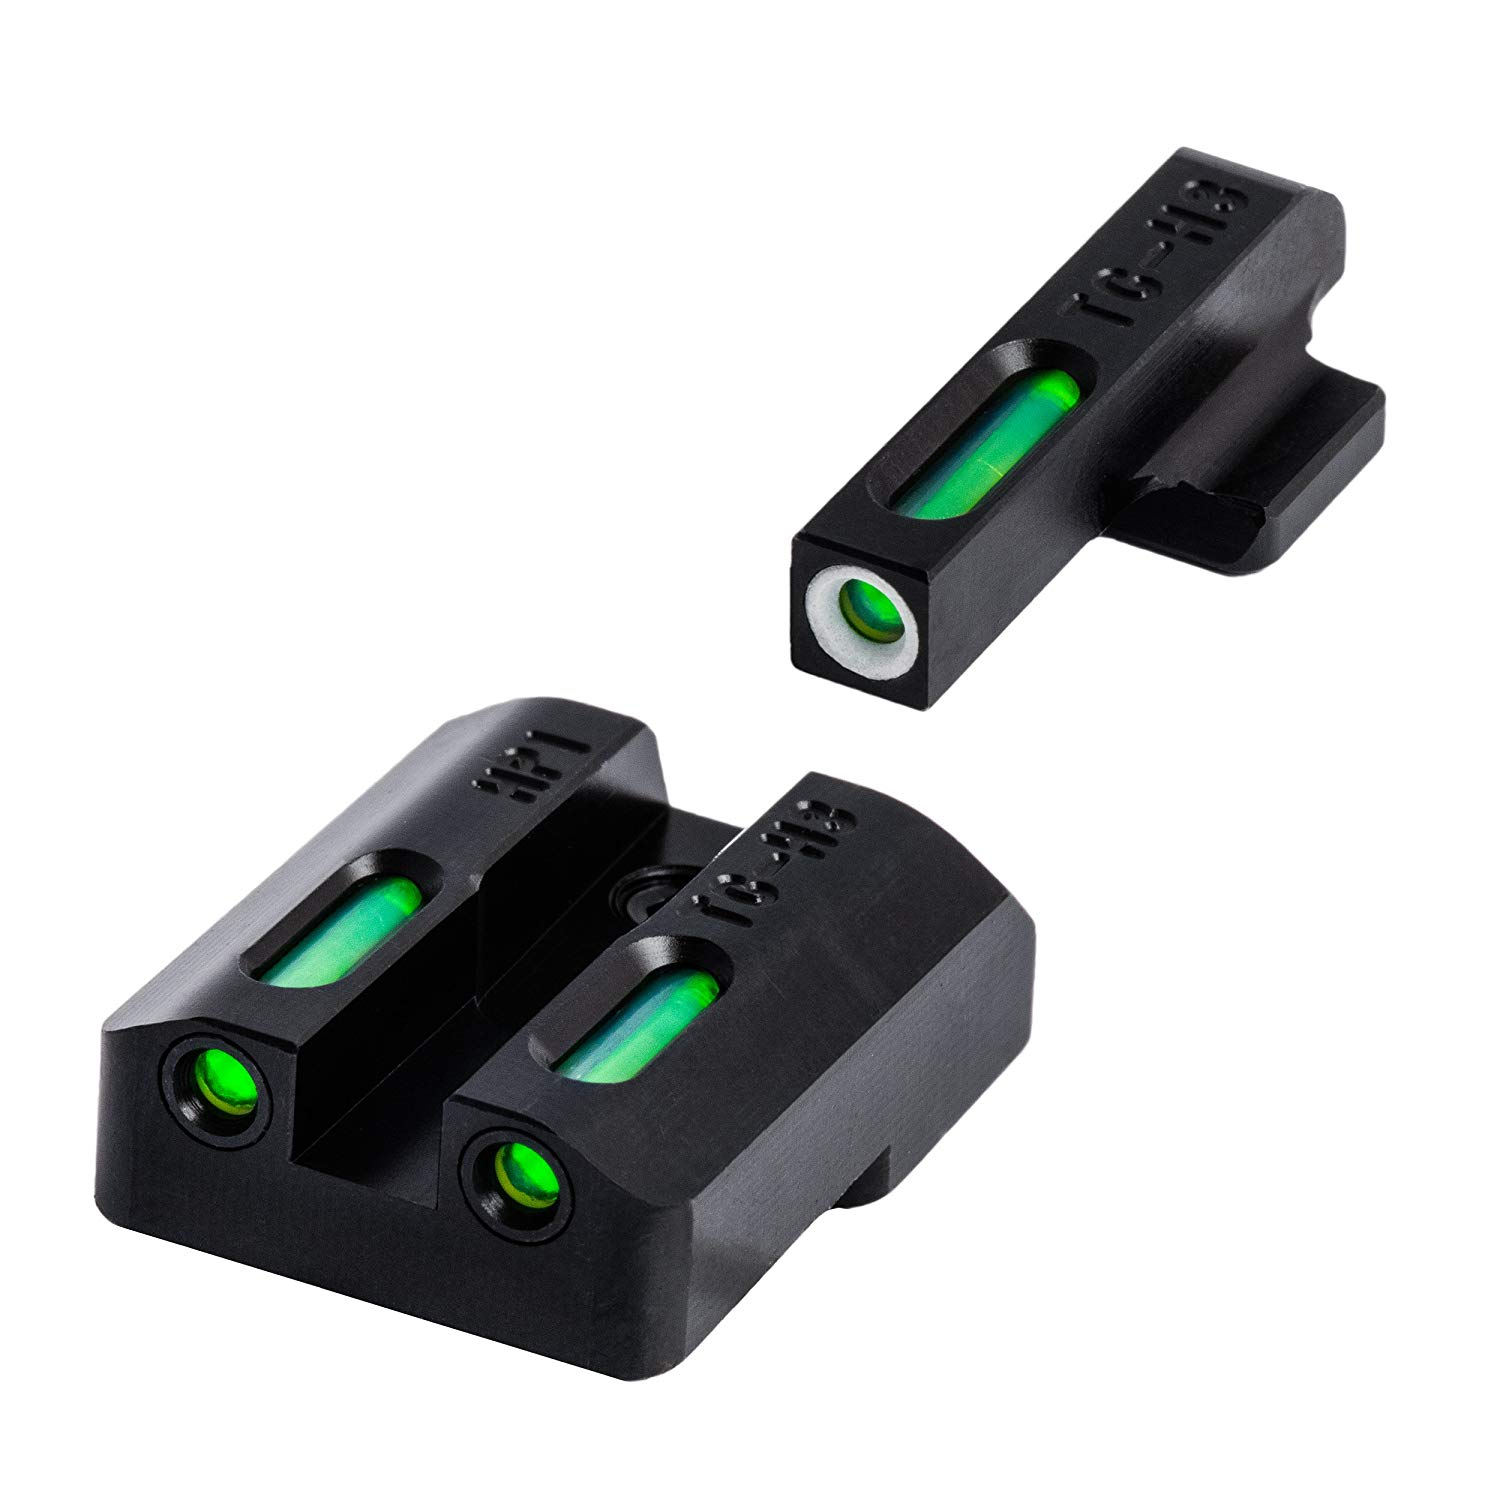 Truglo TFX Tritium and Fiber-Optic Xtreme Handgun Sights